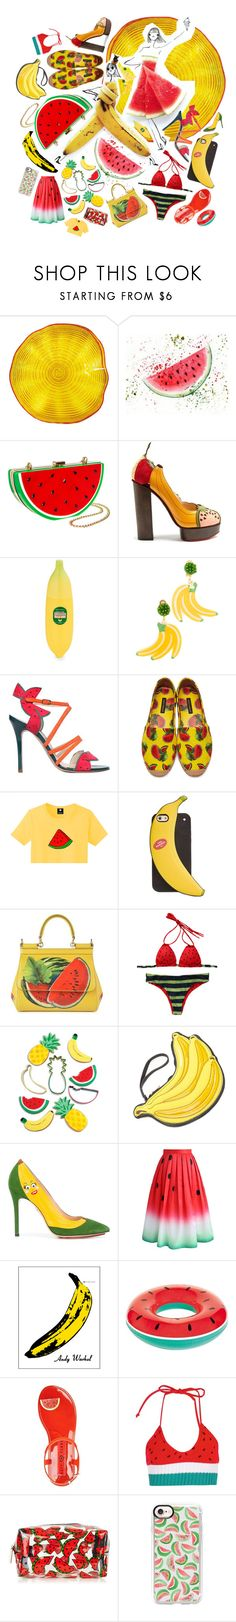 """""""Watermelon & Banana"""" by beanpod ❤ liked on Polyvore featuring Viz Glass, Charlotte Olympia, Tony Moly, Mercedes Salazar, Camilla Elphick, Dolce&Gabbana, Kate Spade, Sunnylife, Chicwish and Andy Warhol"""